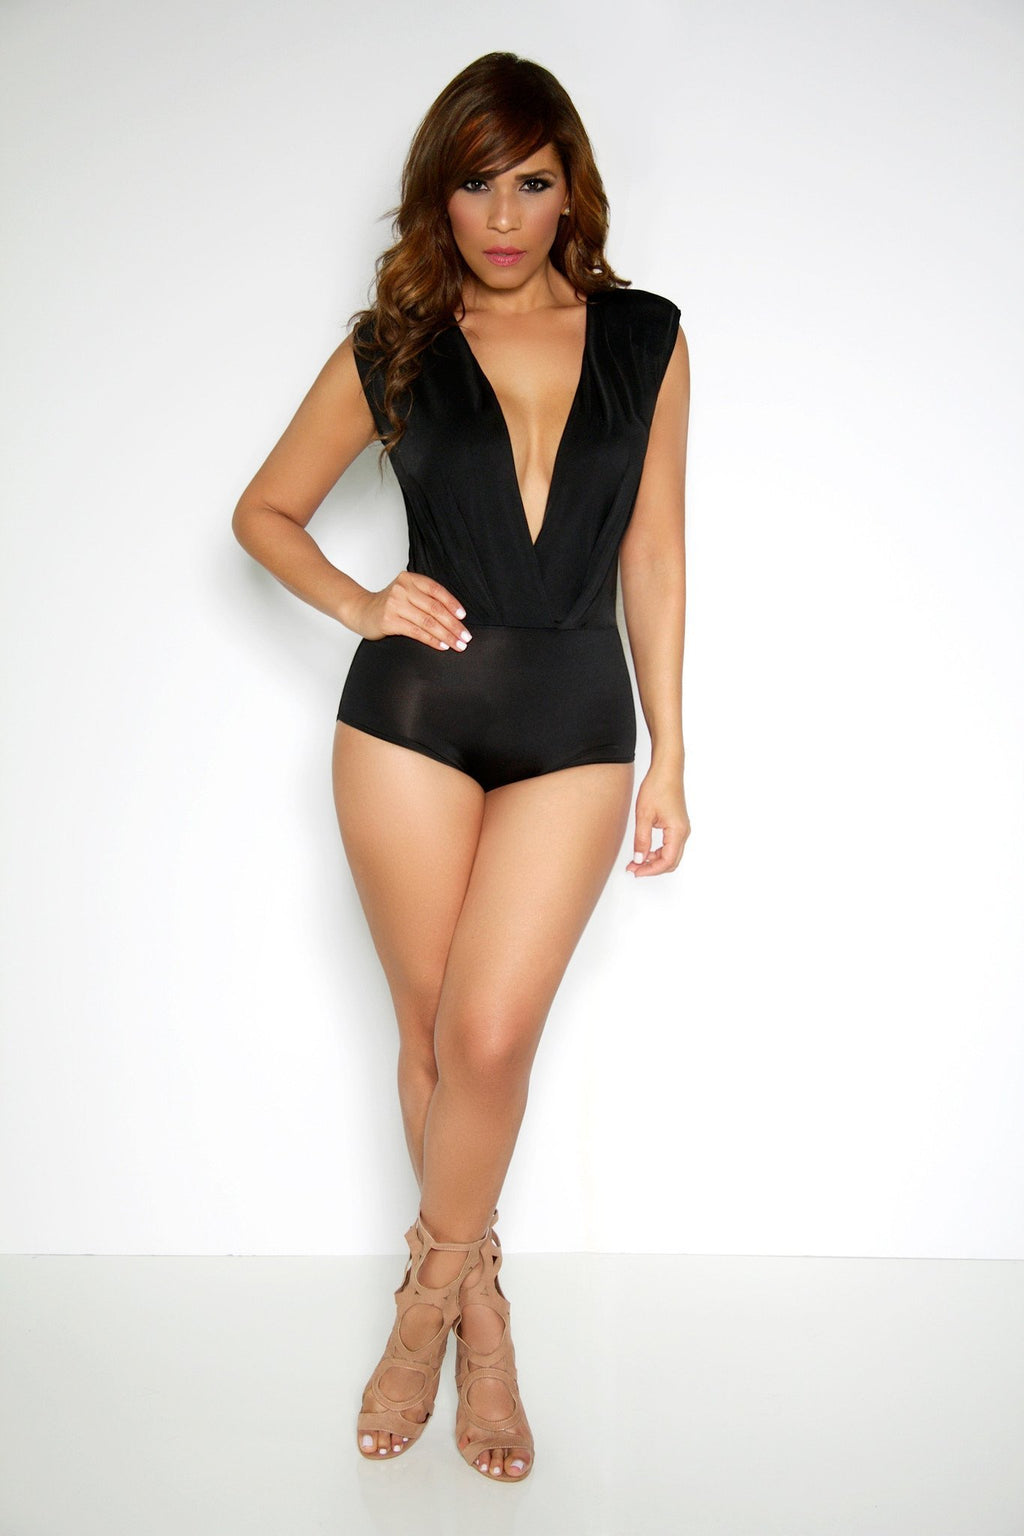 Black Plunging V-Neck Sleeveless Bodysuit Top - MY SEXY STYLES